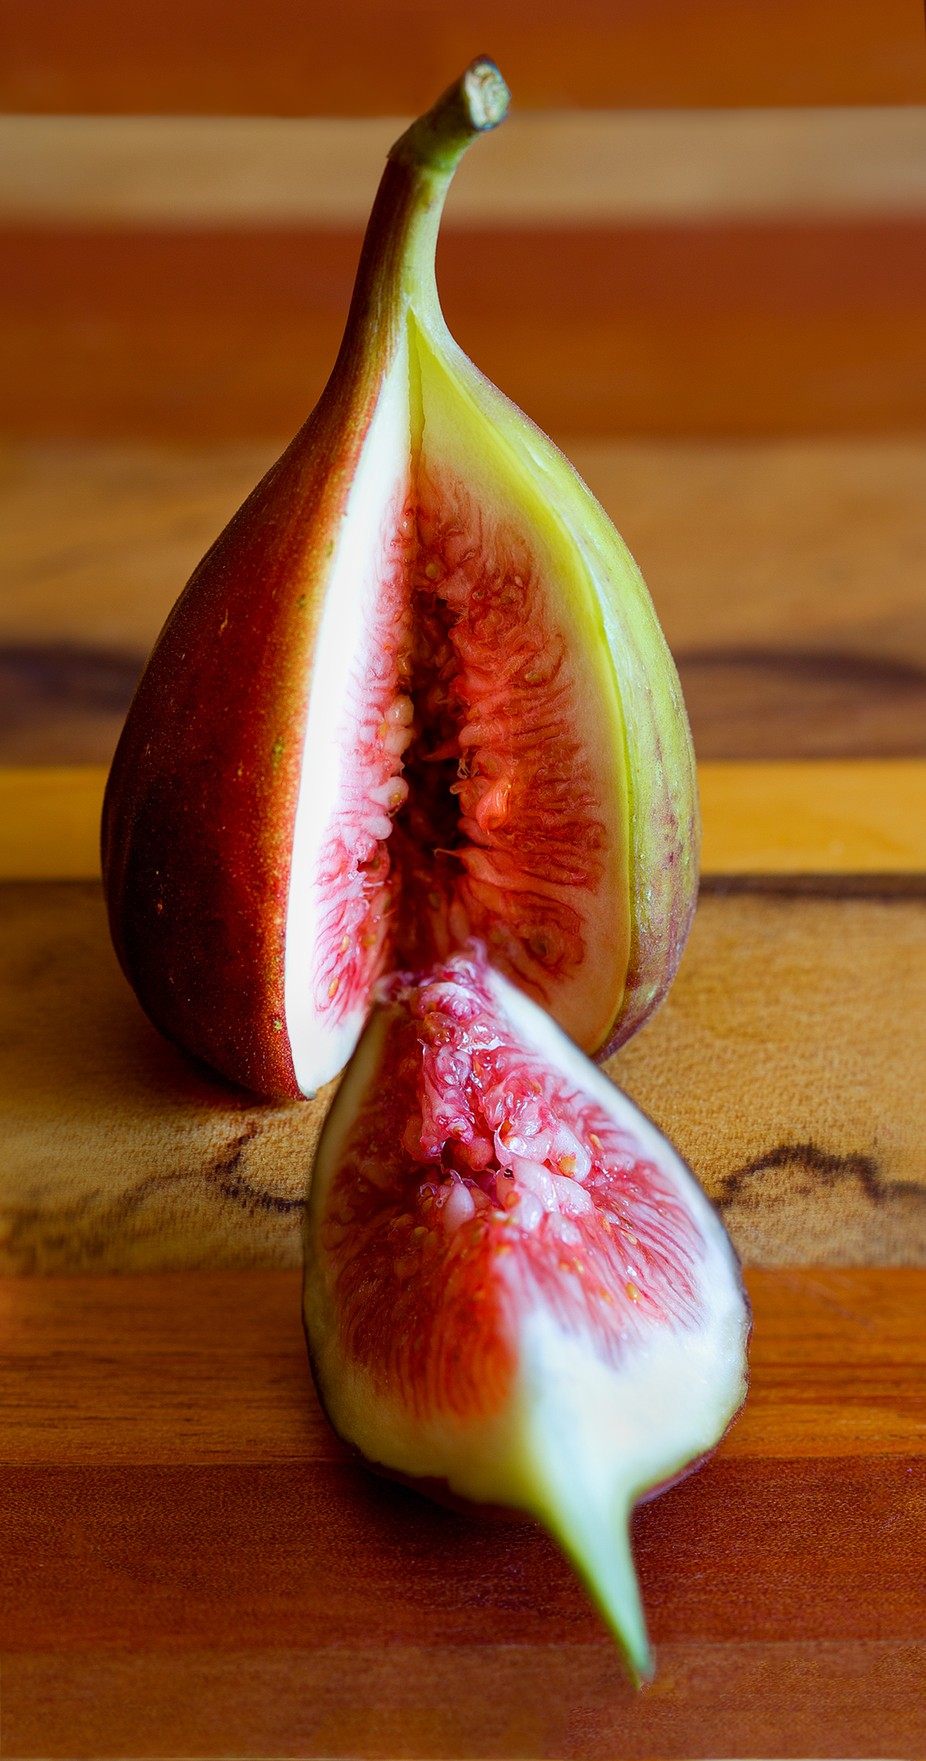 Figs by Carol09 - Looks Delicious Photo Contest